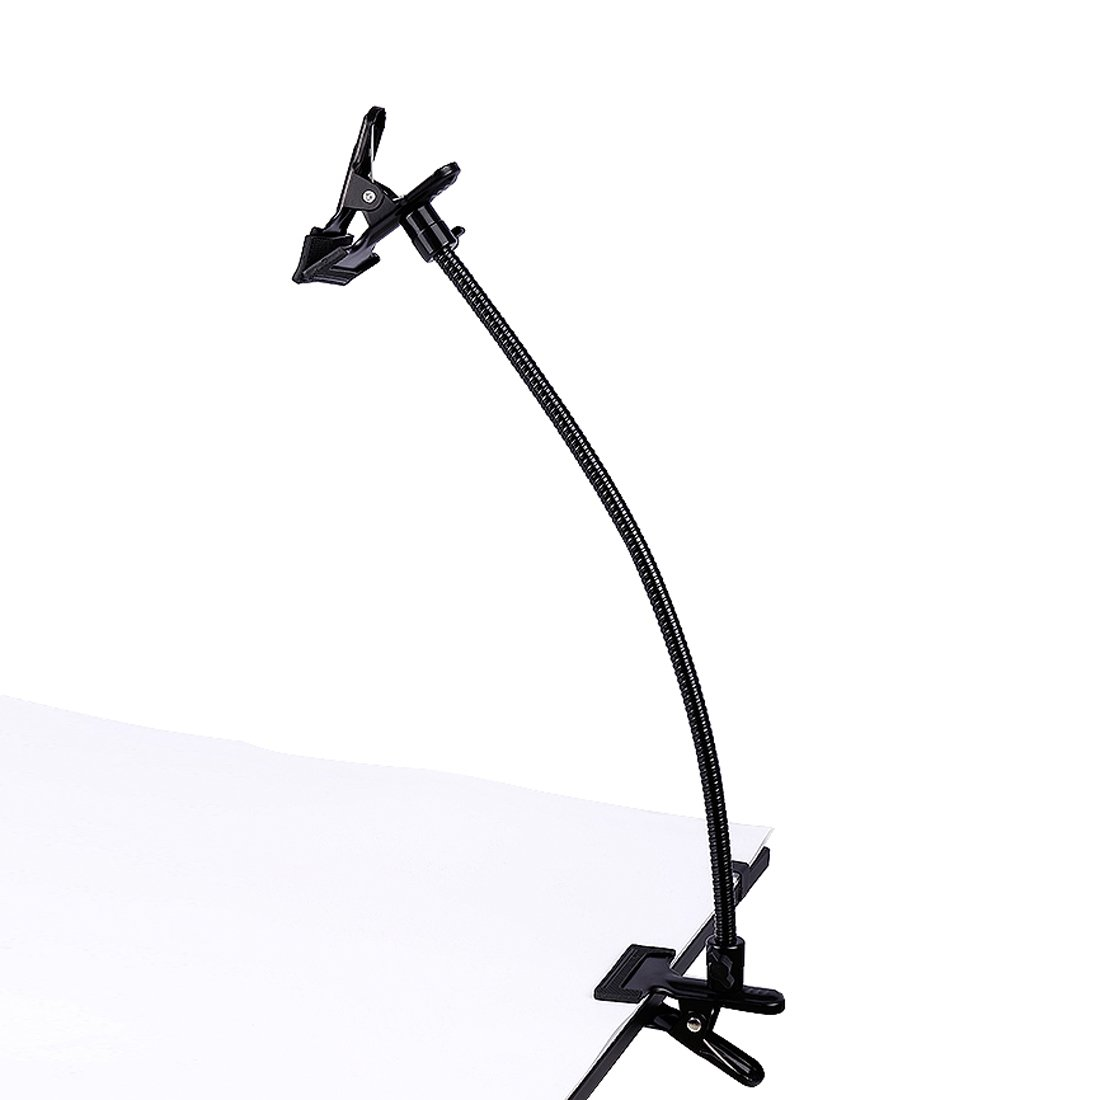 Photo Studio Lighting Light Stand Clamp Background Clip Gooseneck Tube Small Size Reflector Holder by TRUMAGINE